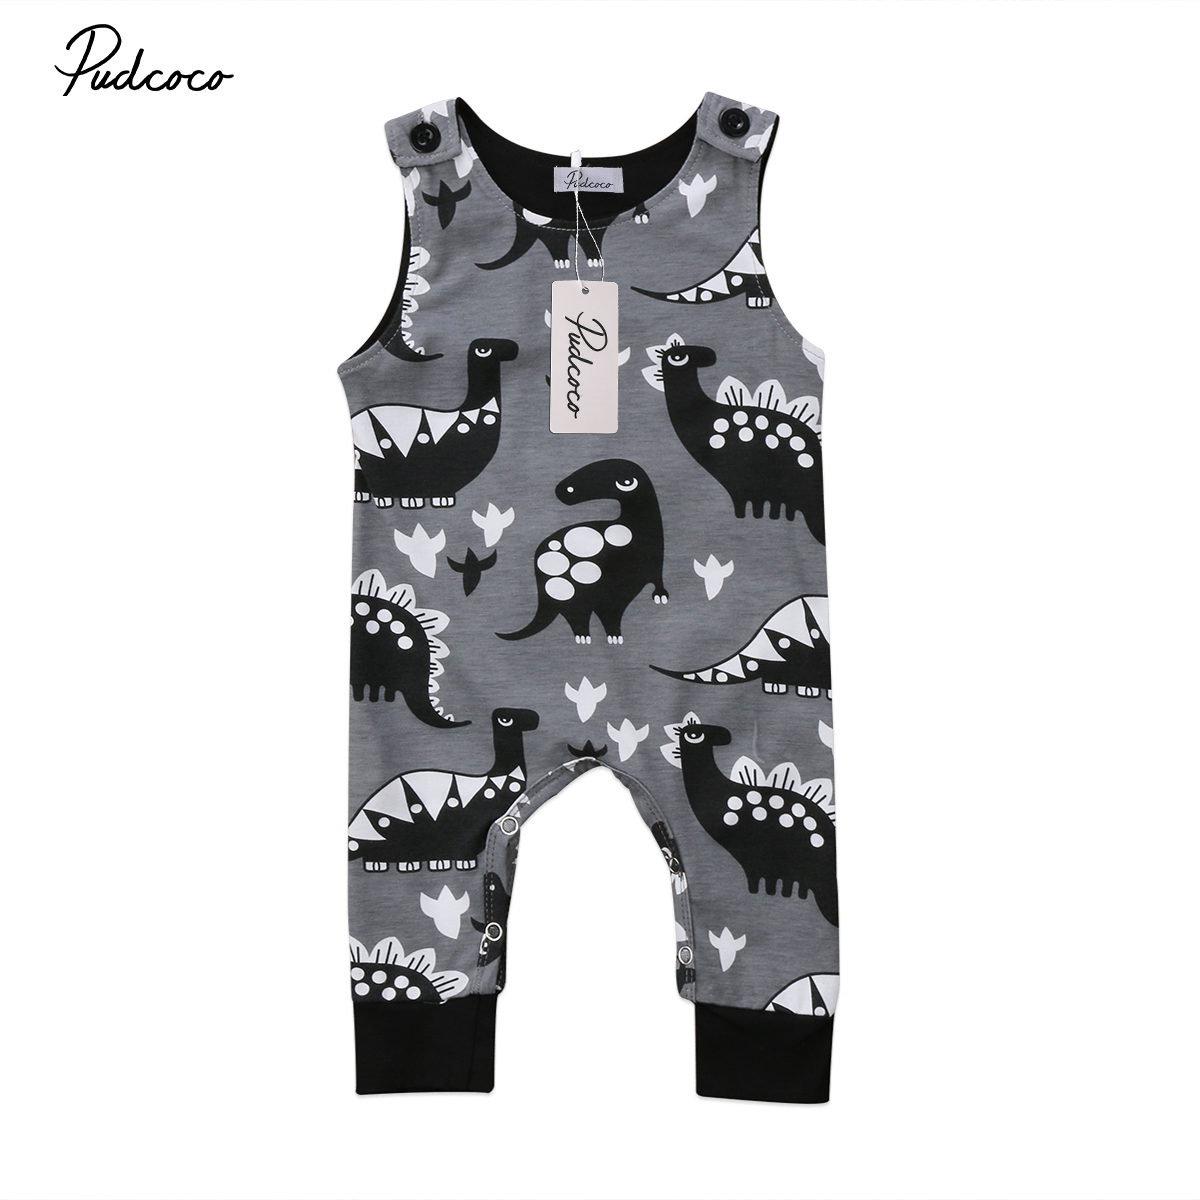 Pudcoco Newborn Infant Baby Boy Girl Dinosaur   Romper   Sleeveless Jumpsuit Playsuit One-Pieces Clothes Outfits